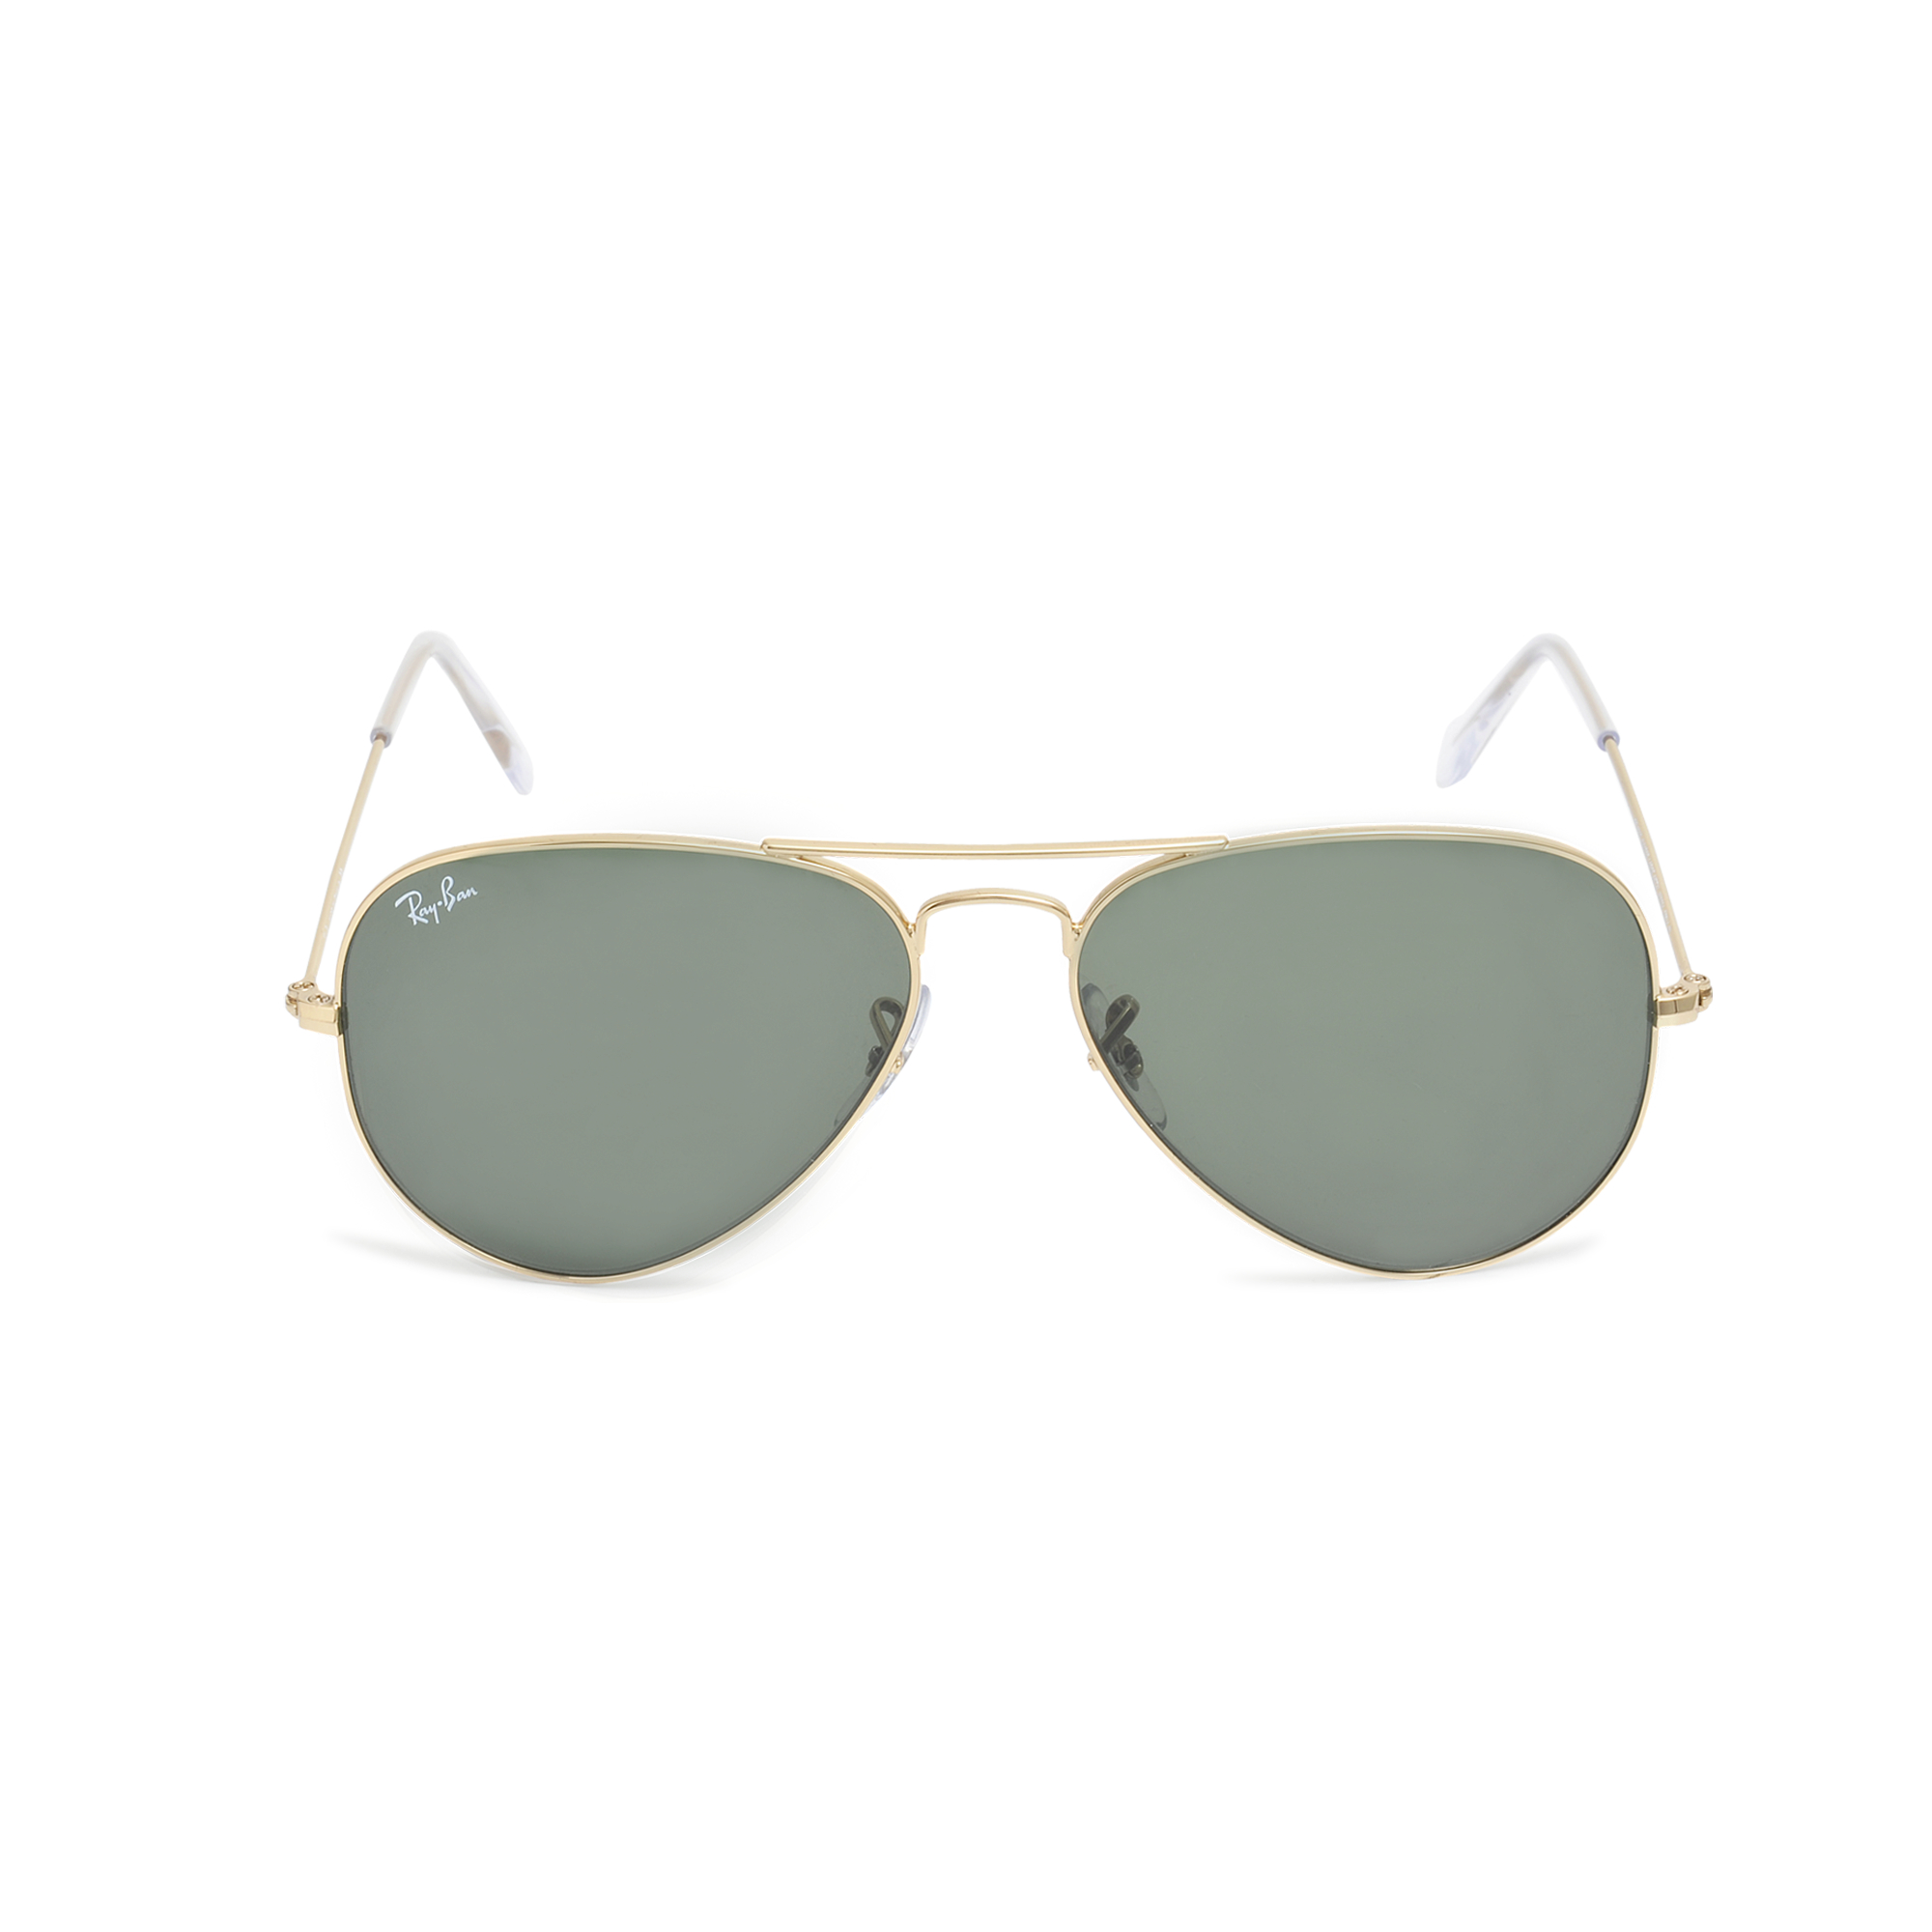 ray ban aviator 3025 sunglasses in gray lyst. Black Bedroom Furniture Sets. Home Design Ideas